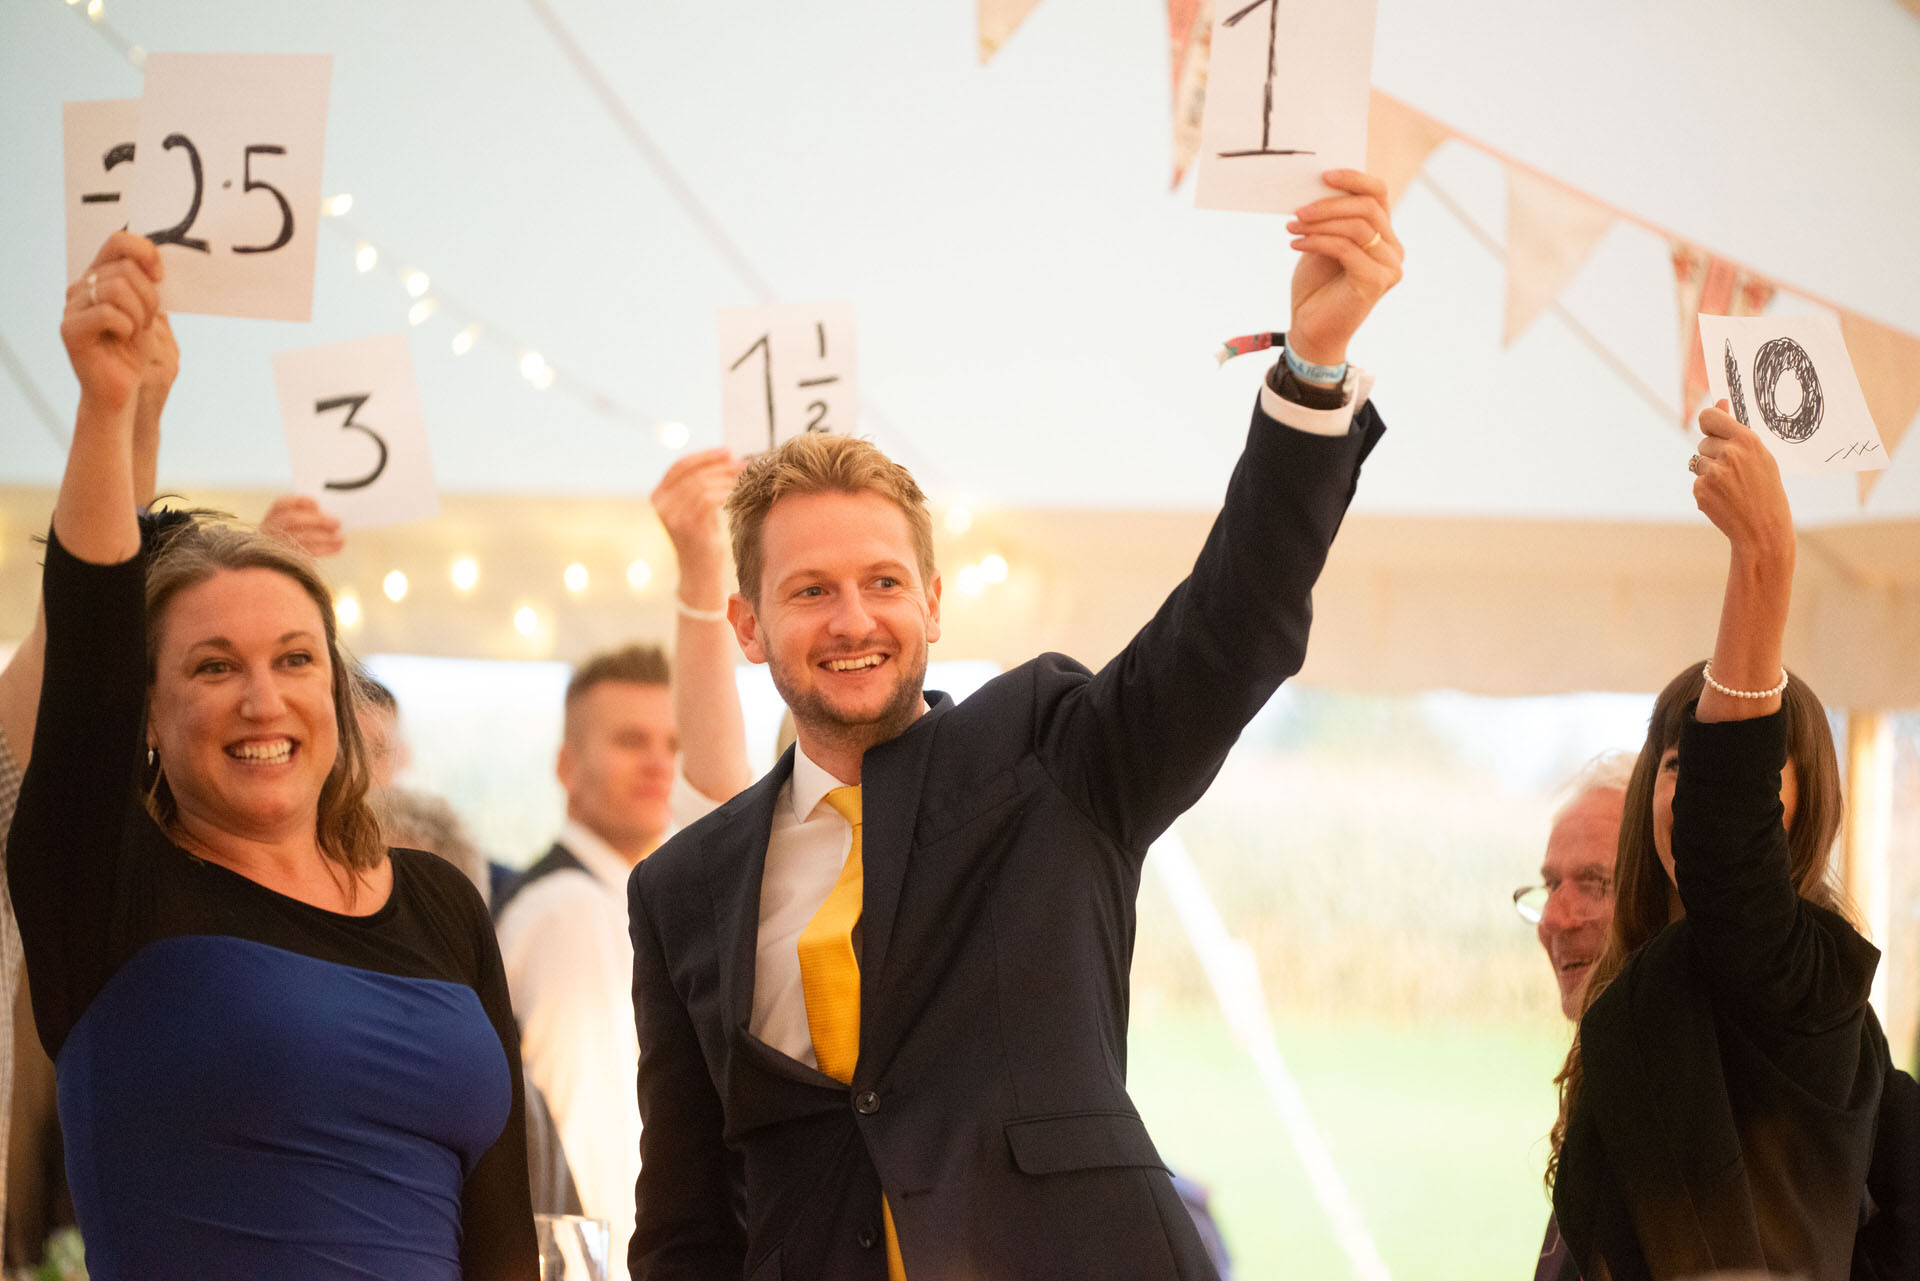 guests score the speeches